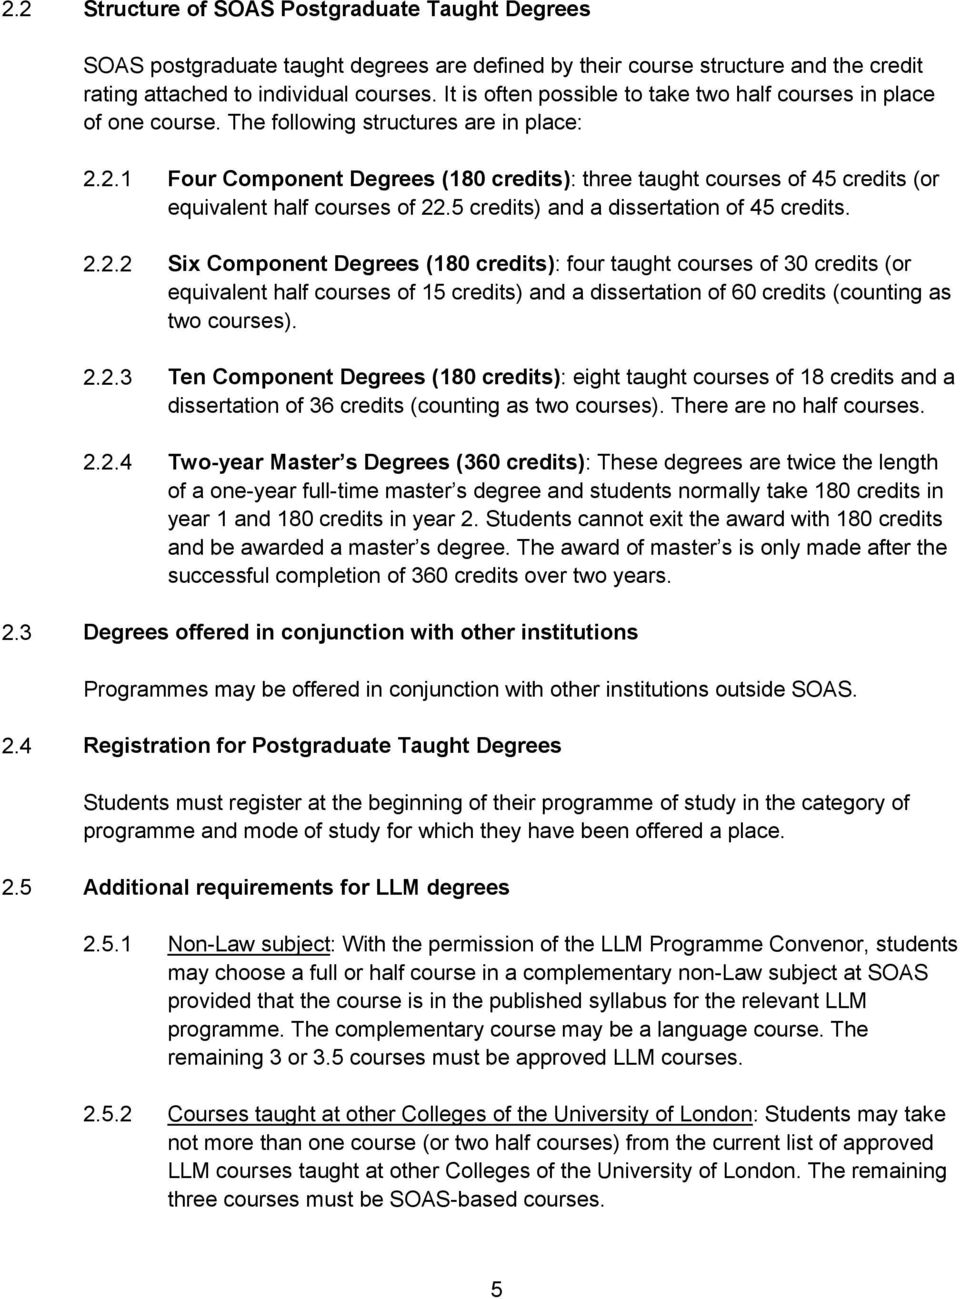 2.1 Four Component Degrees (180 credits): three taught courses of 45 credits (or equivalent half courses of 22.5 credits) and a dissertation of 45 credits. 2.2.2 Six Component Degrees (180 credits): four taught courses of 30 credits (or equivalent half courses of 15 credits) and a dissertation of 60 credits (counting as two courses).